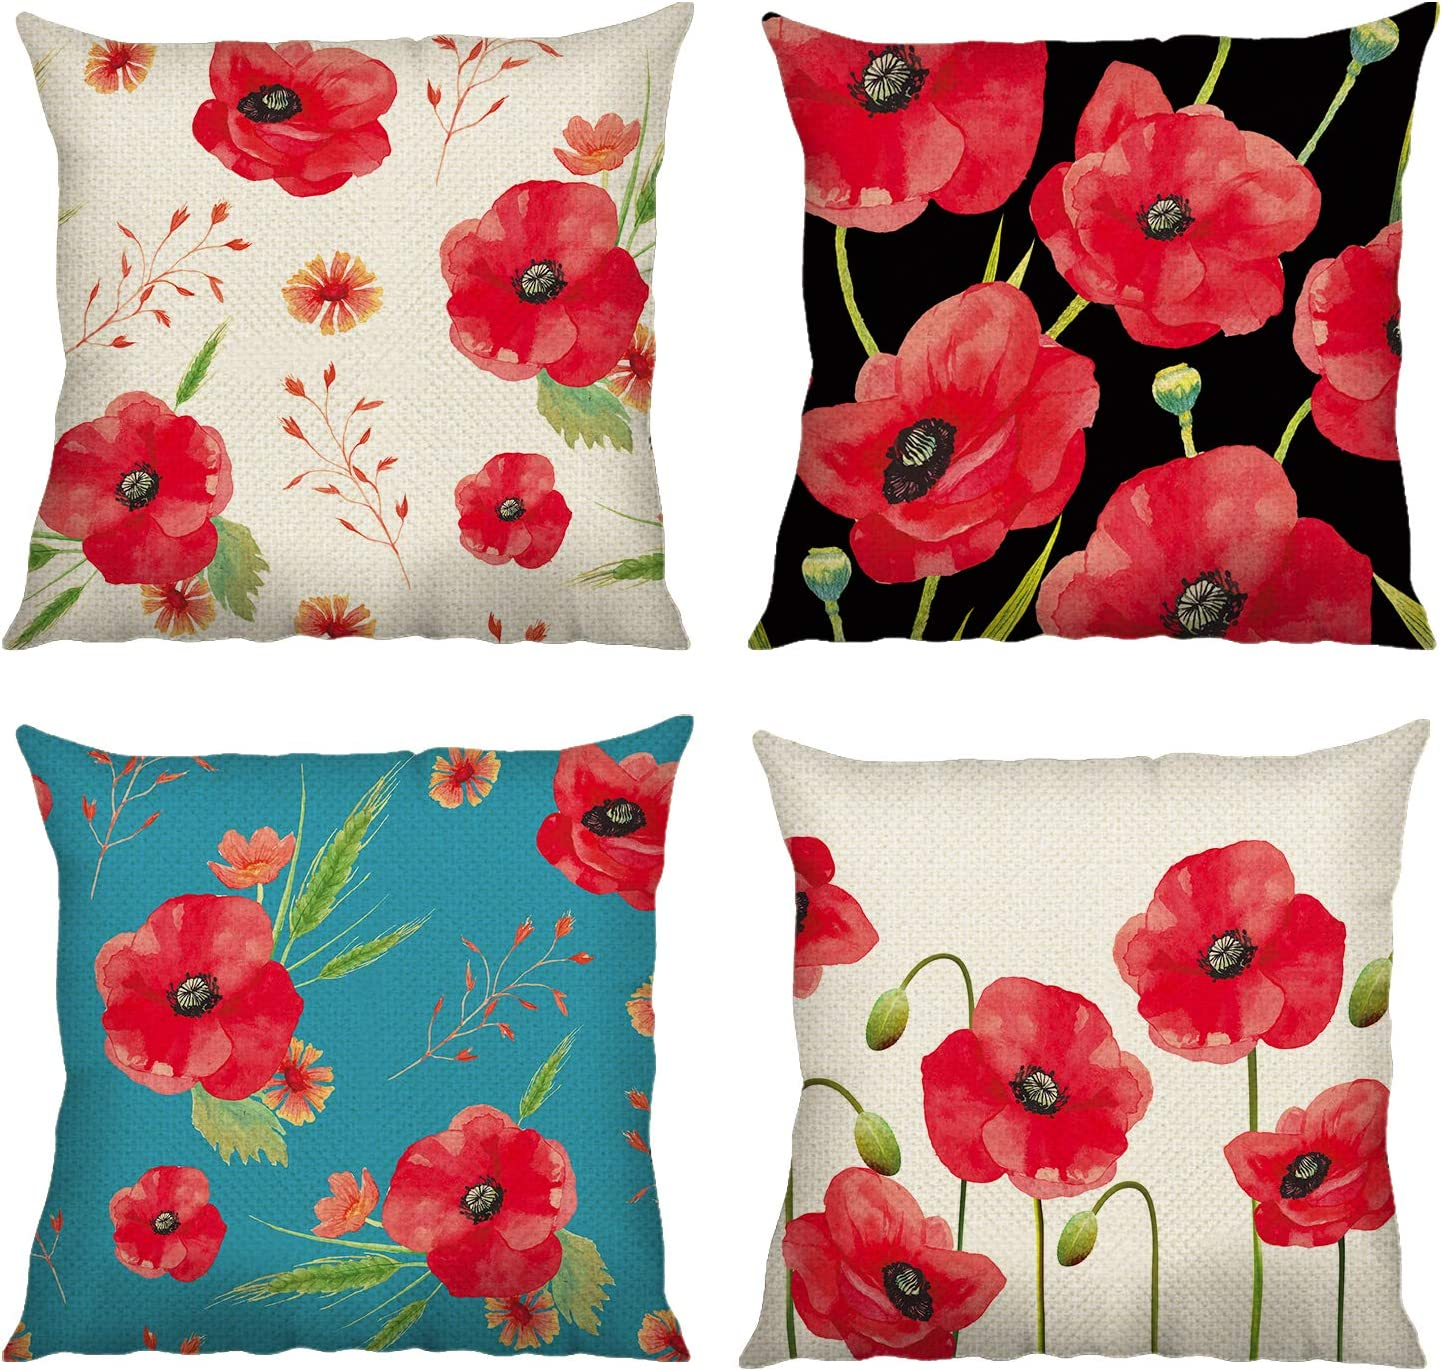 Bonhause Poppy Flower Cushion Covers 18 X 18 Inch Set Of 4 Red Floral Decorative Throw Pillow Covers Cotton Linen Square Pillowcases For Sofa Couch Car Bedroom Home Décor 45cm X 45cm